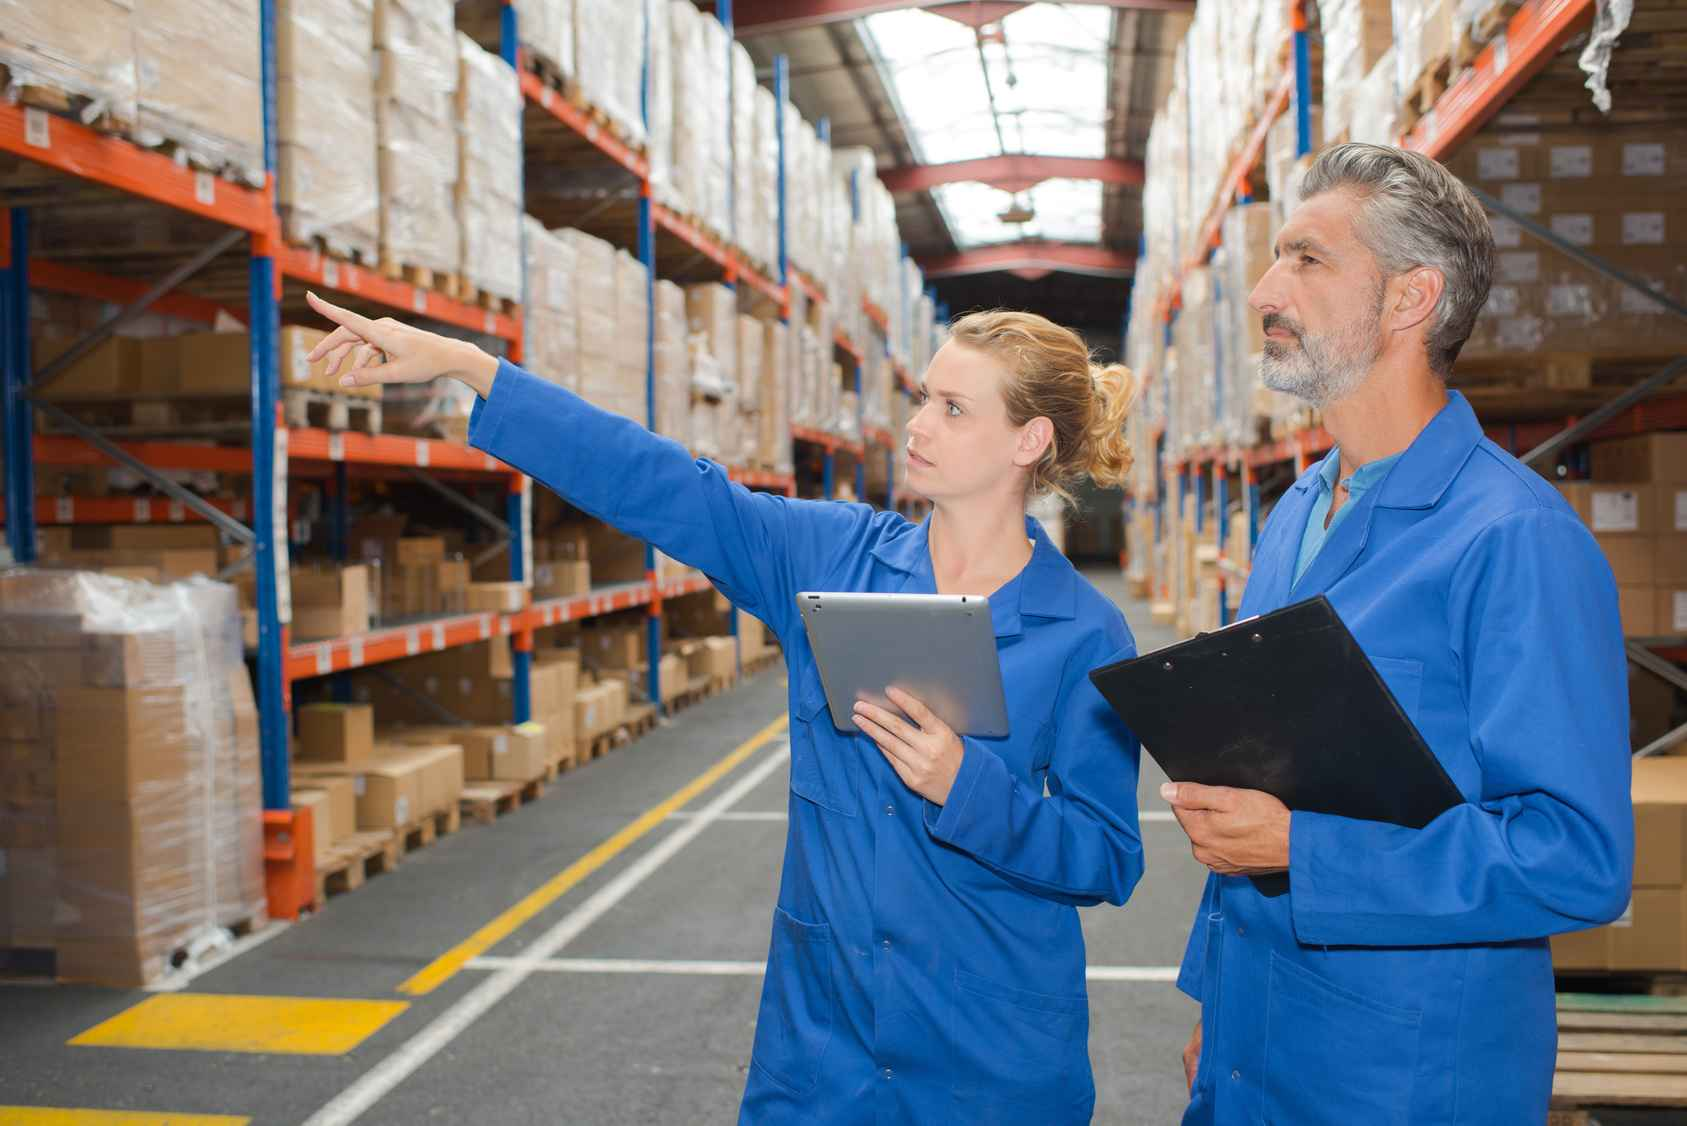 Racking inspection experts